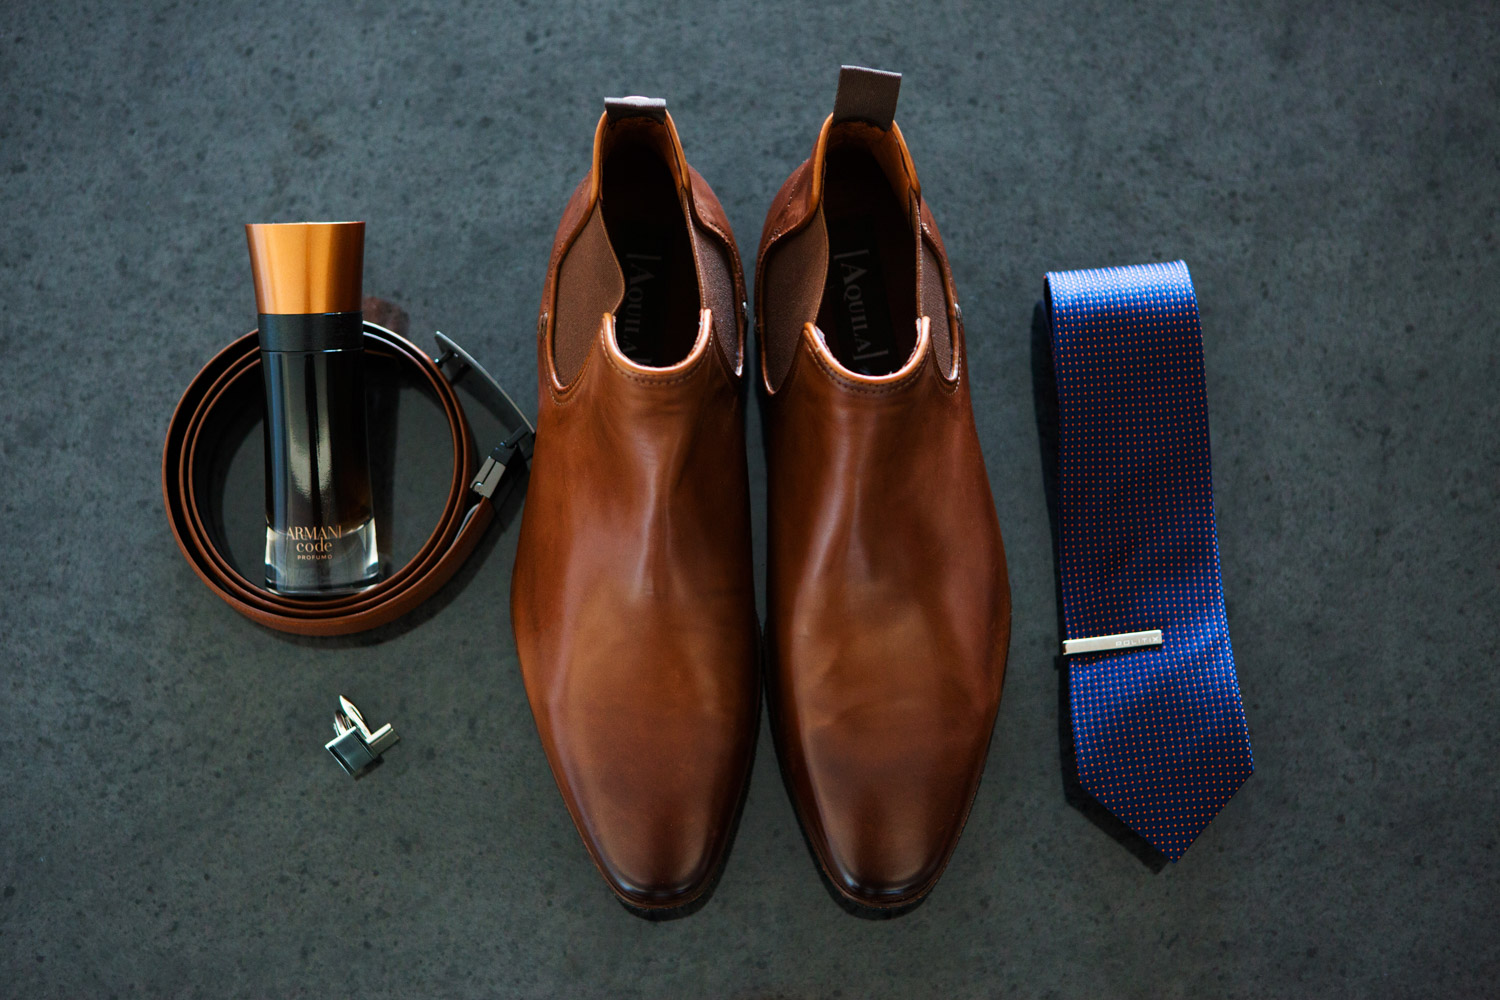 wedding-0307-groomdetails-boots-brown-tie-brisbane.jpg